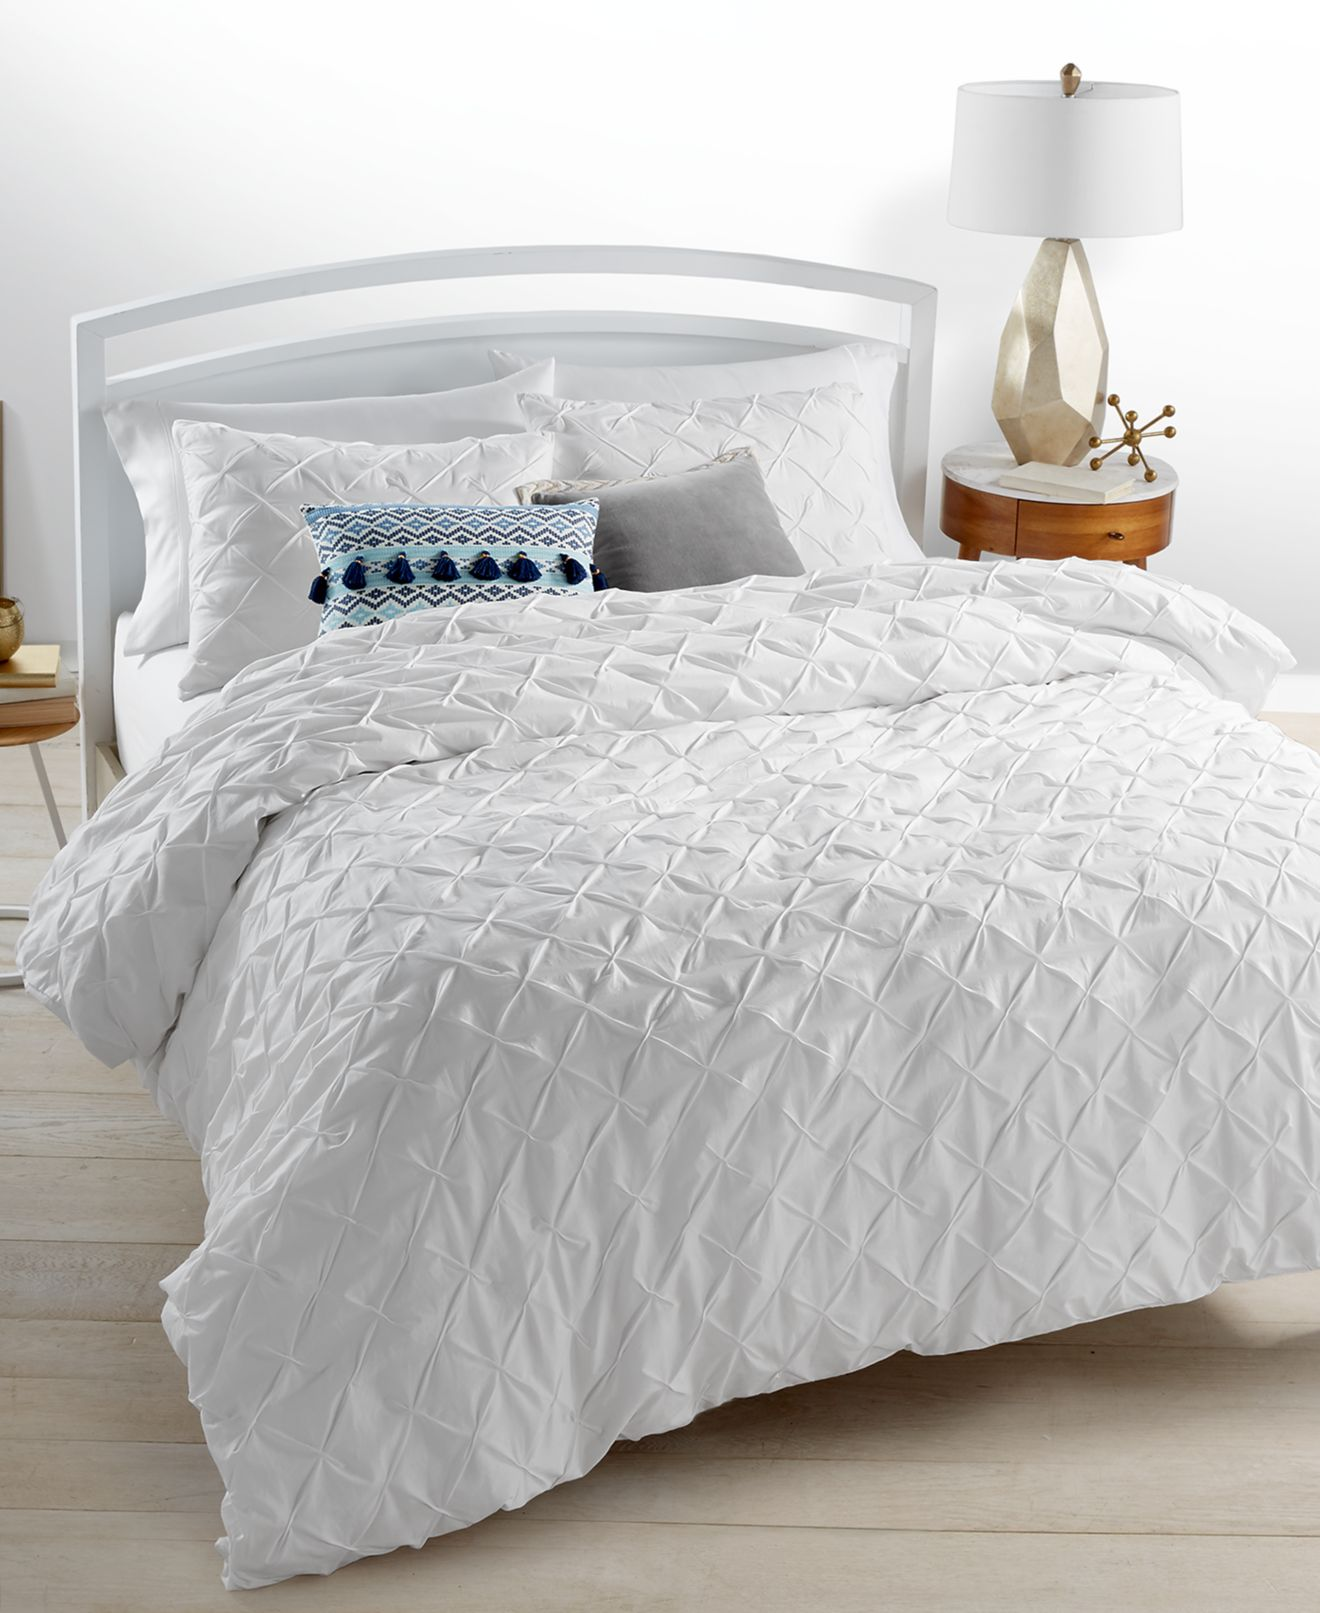 martha stewart bedding and bath collection macy s whim by martha stewart collection you compleat me white bedding collection created for macy s